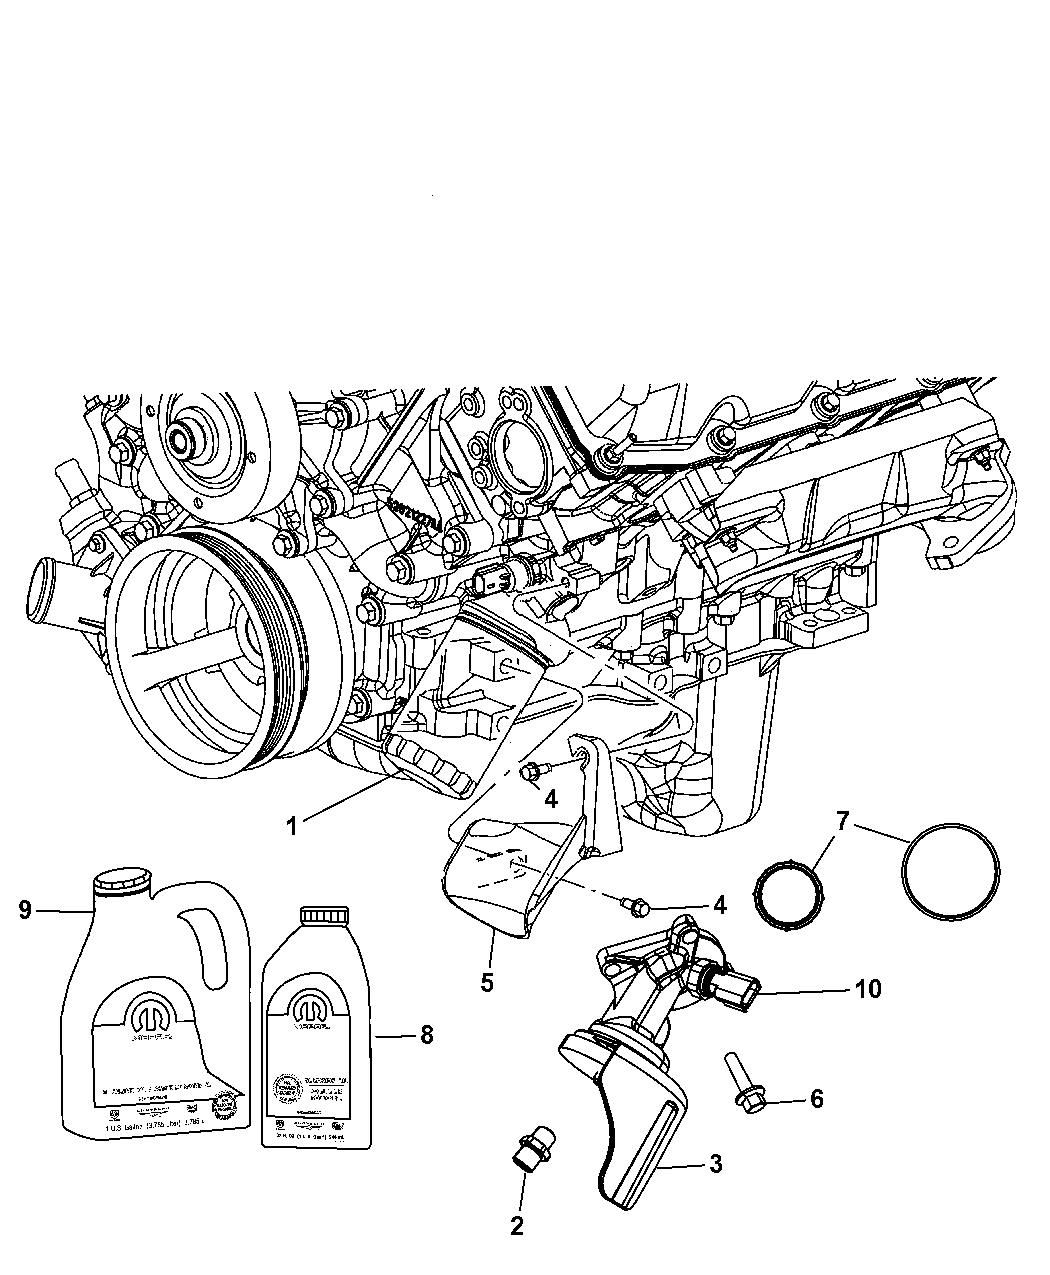 2011 Dodge Durango Engine Oil Filter Adapter Cooler Trailer Hitch Wiring Diagram Thumbnail